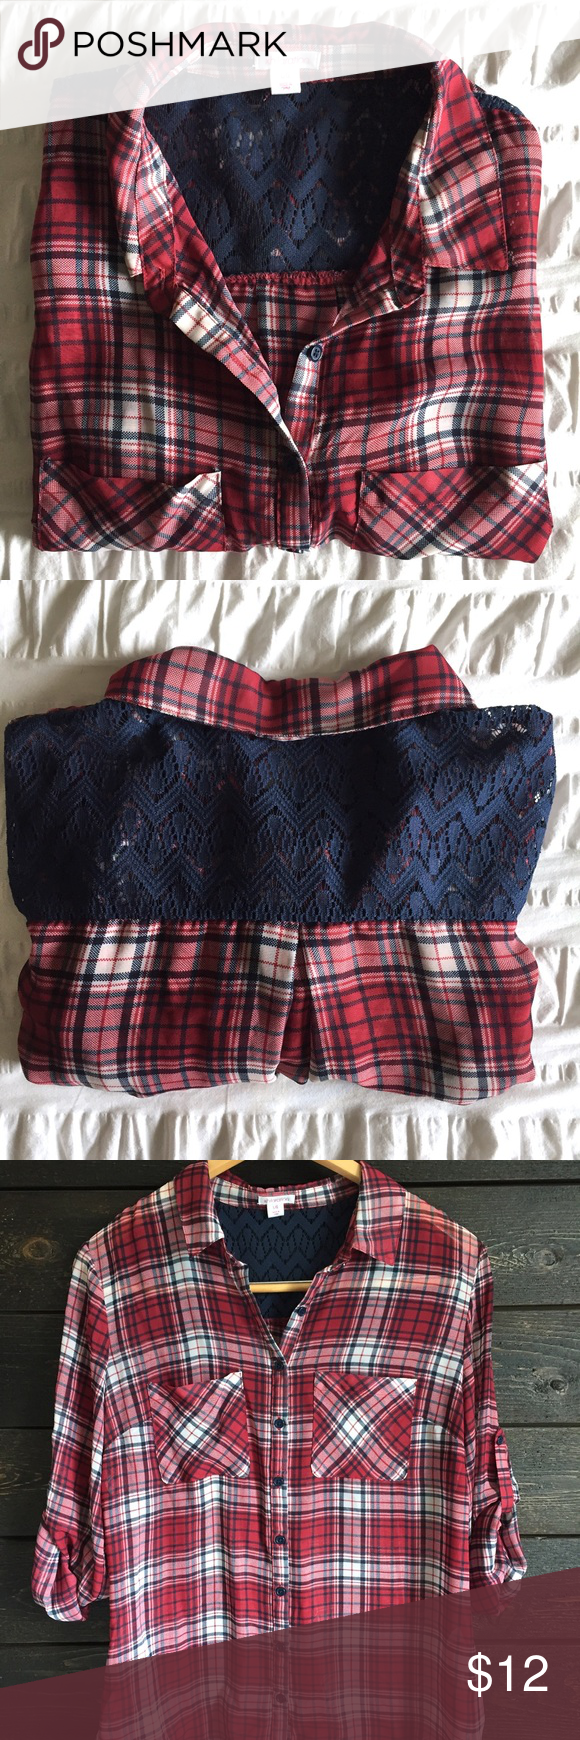 Plaid Hi/Low Blouse Plaid hi/low button up blouse. Lace detailing on back. Roll up and button sleeves. 100% polyester. Xhilaration Tops Blouses